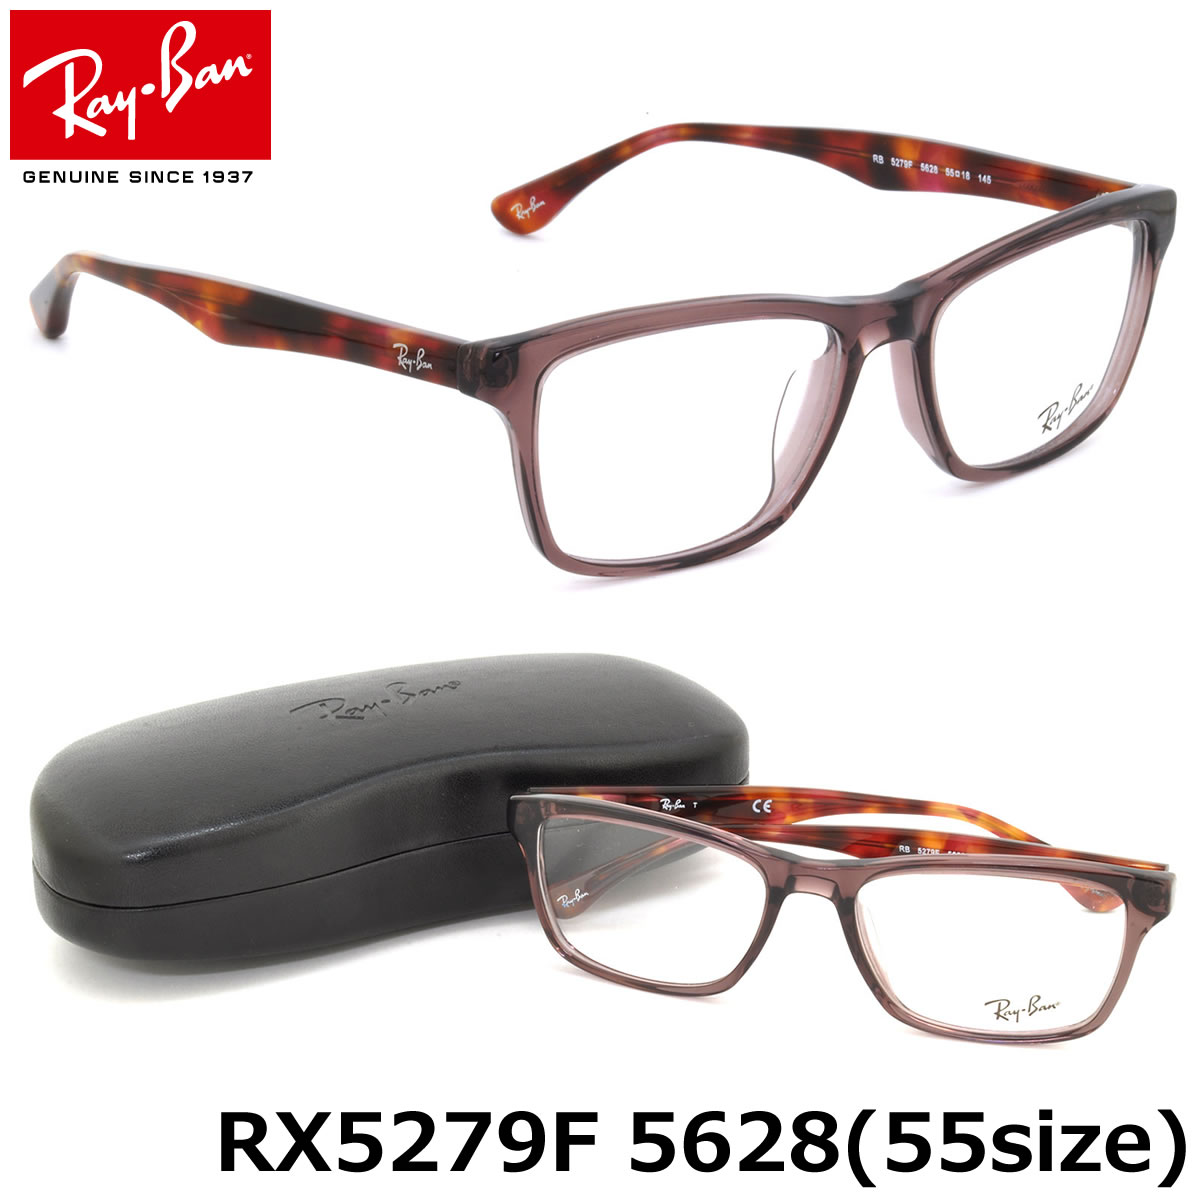 (Ray-Ban) glasses RX5279F5628 55 size Wellington full fit RayBan men s  women s 45dad685d6